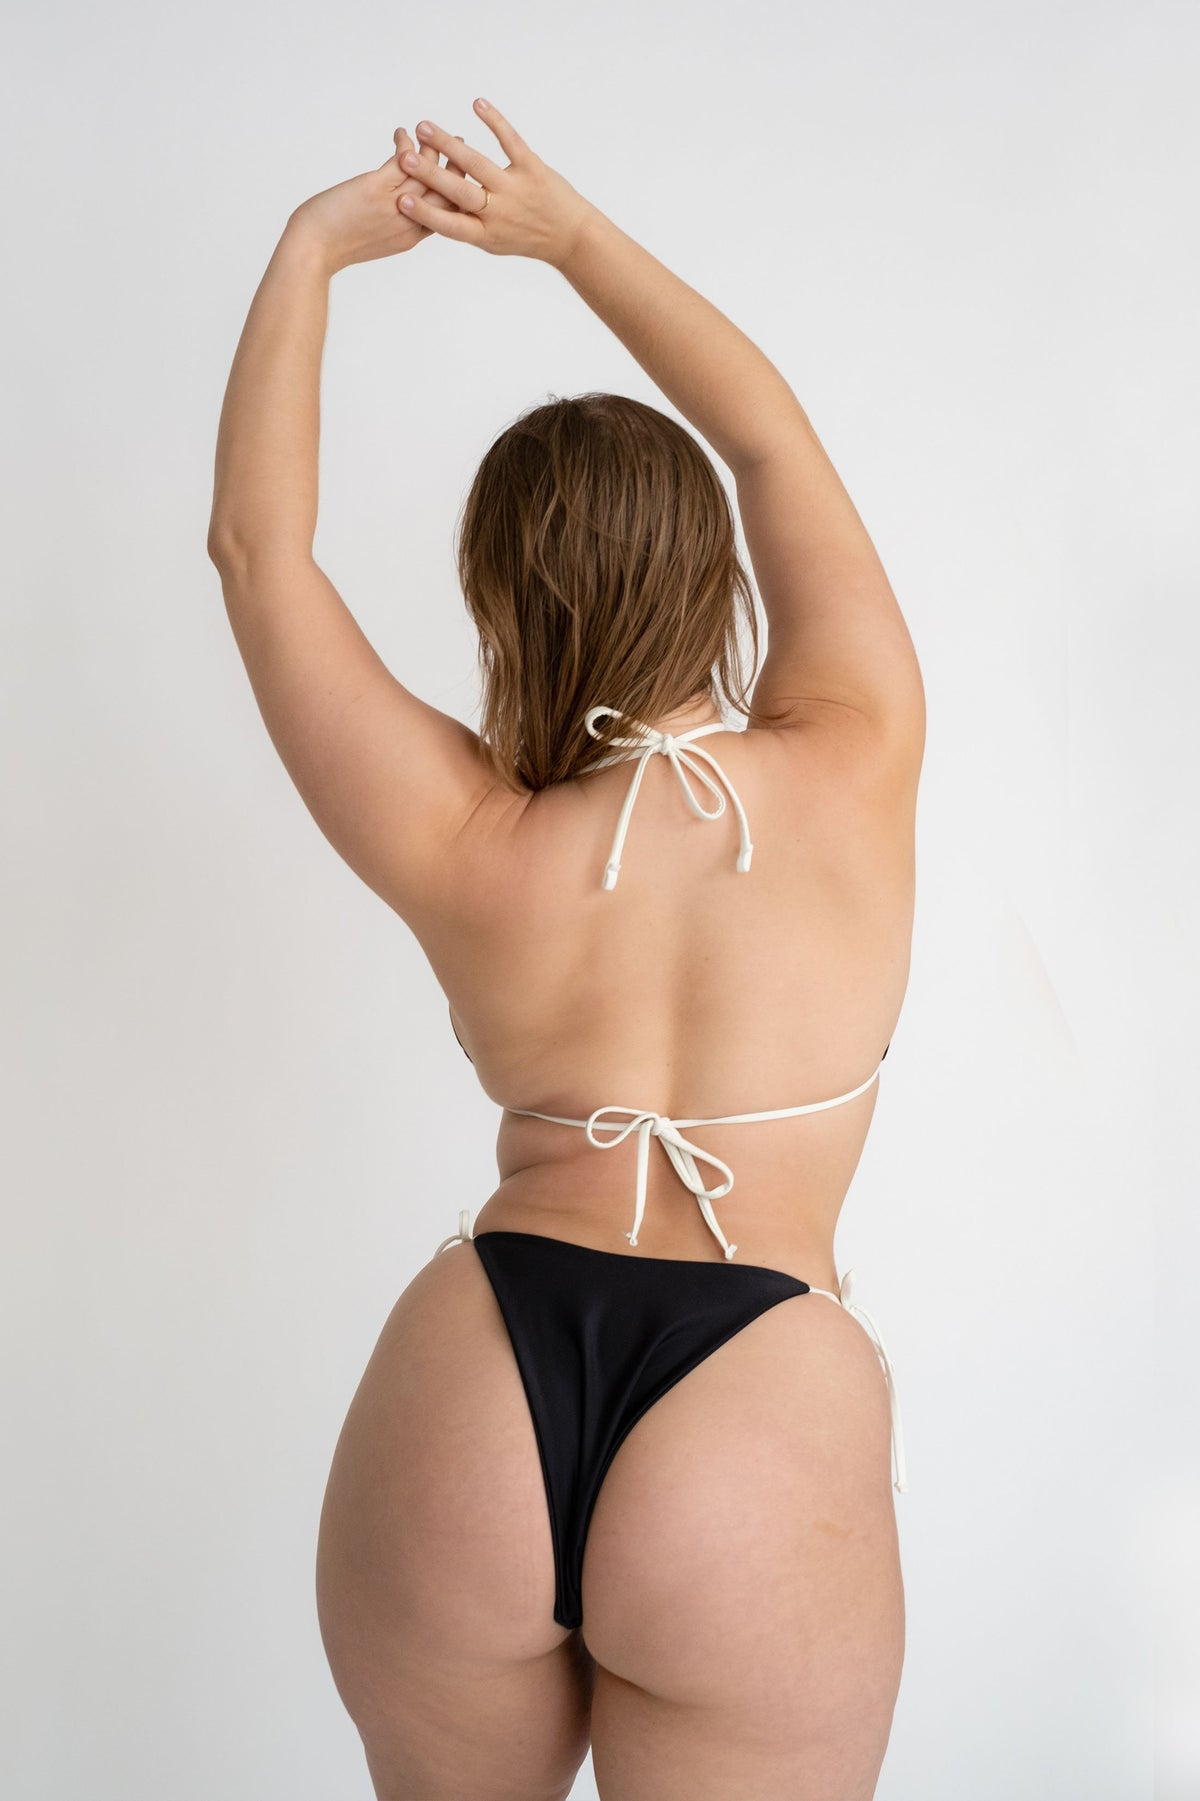 The back of a woman leaning to the side with her arms stretched above her head wearing a black triangle bikini top with adjustable white straps and black triangle bikini bottoms with white strings.